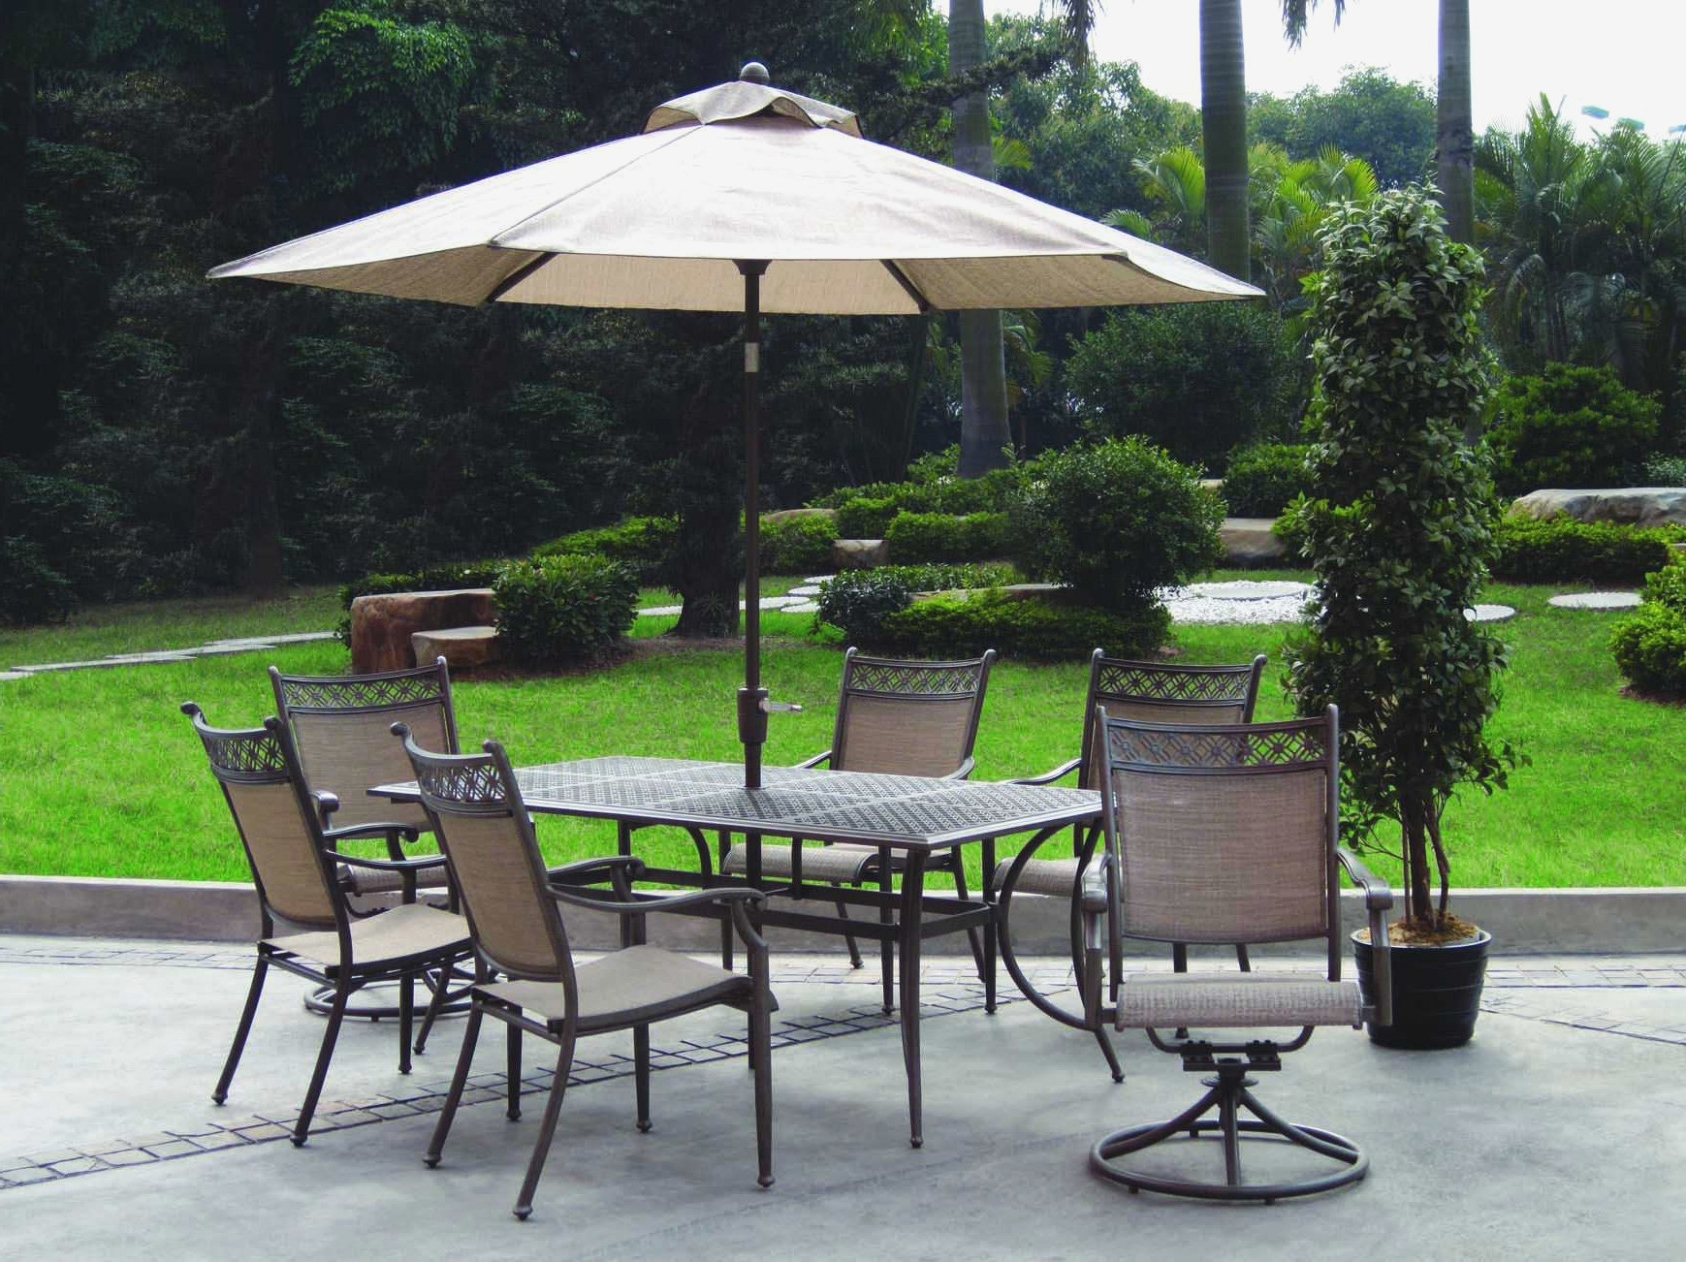 Current Enchanting Cheap Patio Umbrellas With Furniture Alluring Collection Throughout Cheap Patio Umbrellas (View 11 of 20)